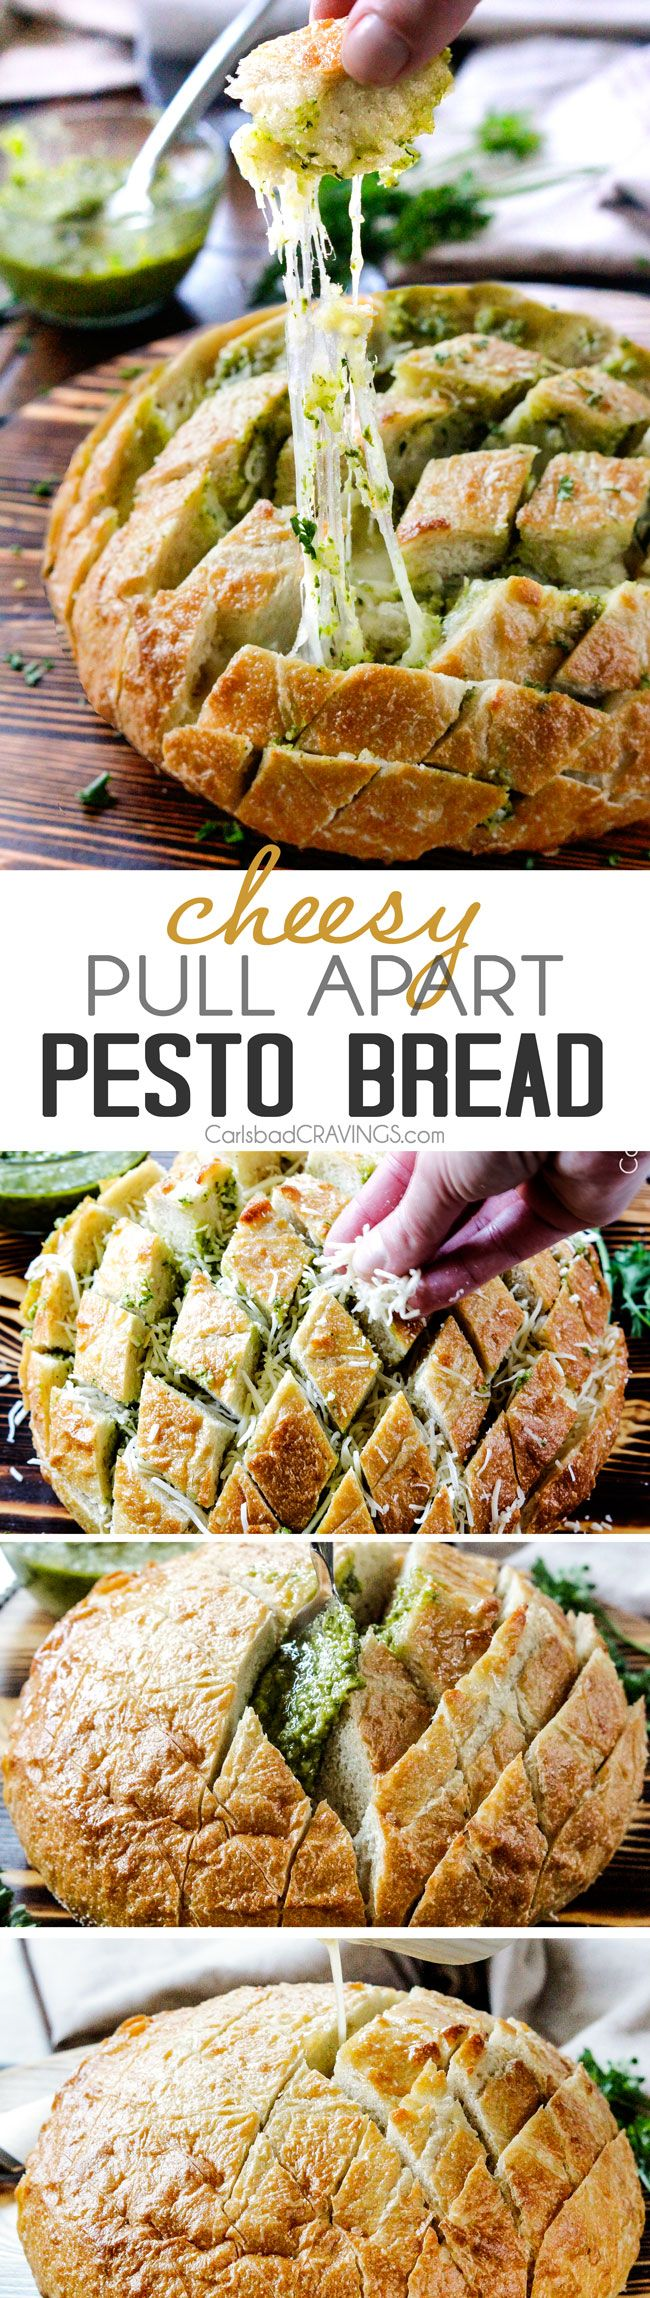 4 Ingredient, make ahead buttery, Cheesy Pull Apart Pesto Bread is SO addictingly delicious and couldn't be any easier!  the perfect party or game day appetizer or AMAZING company side!  #ad #SK #Chew